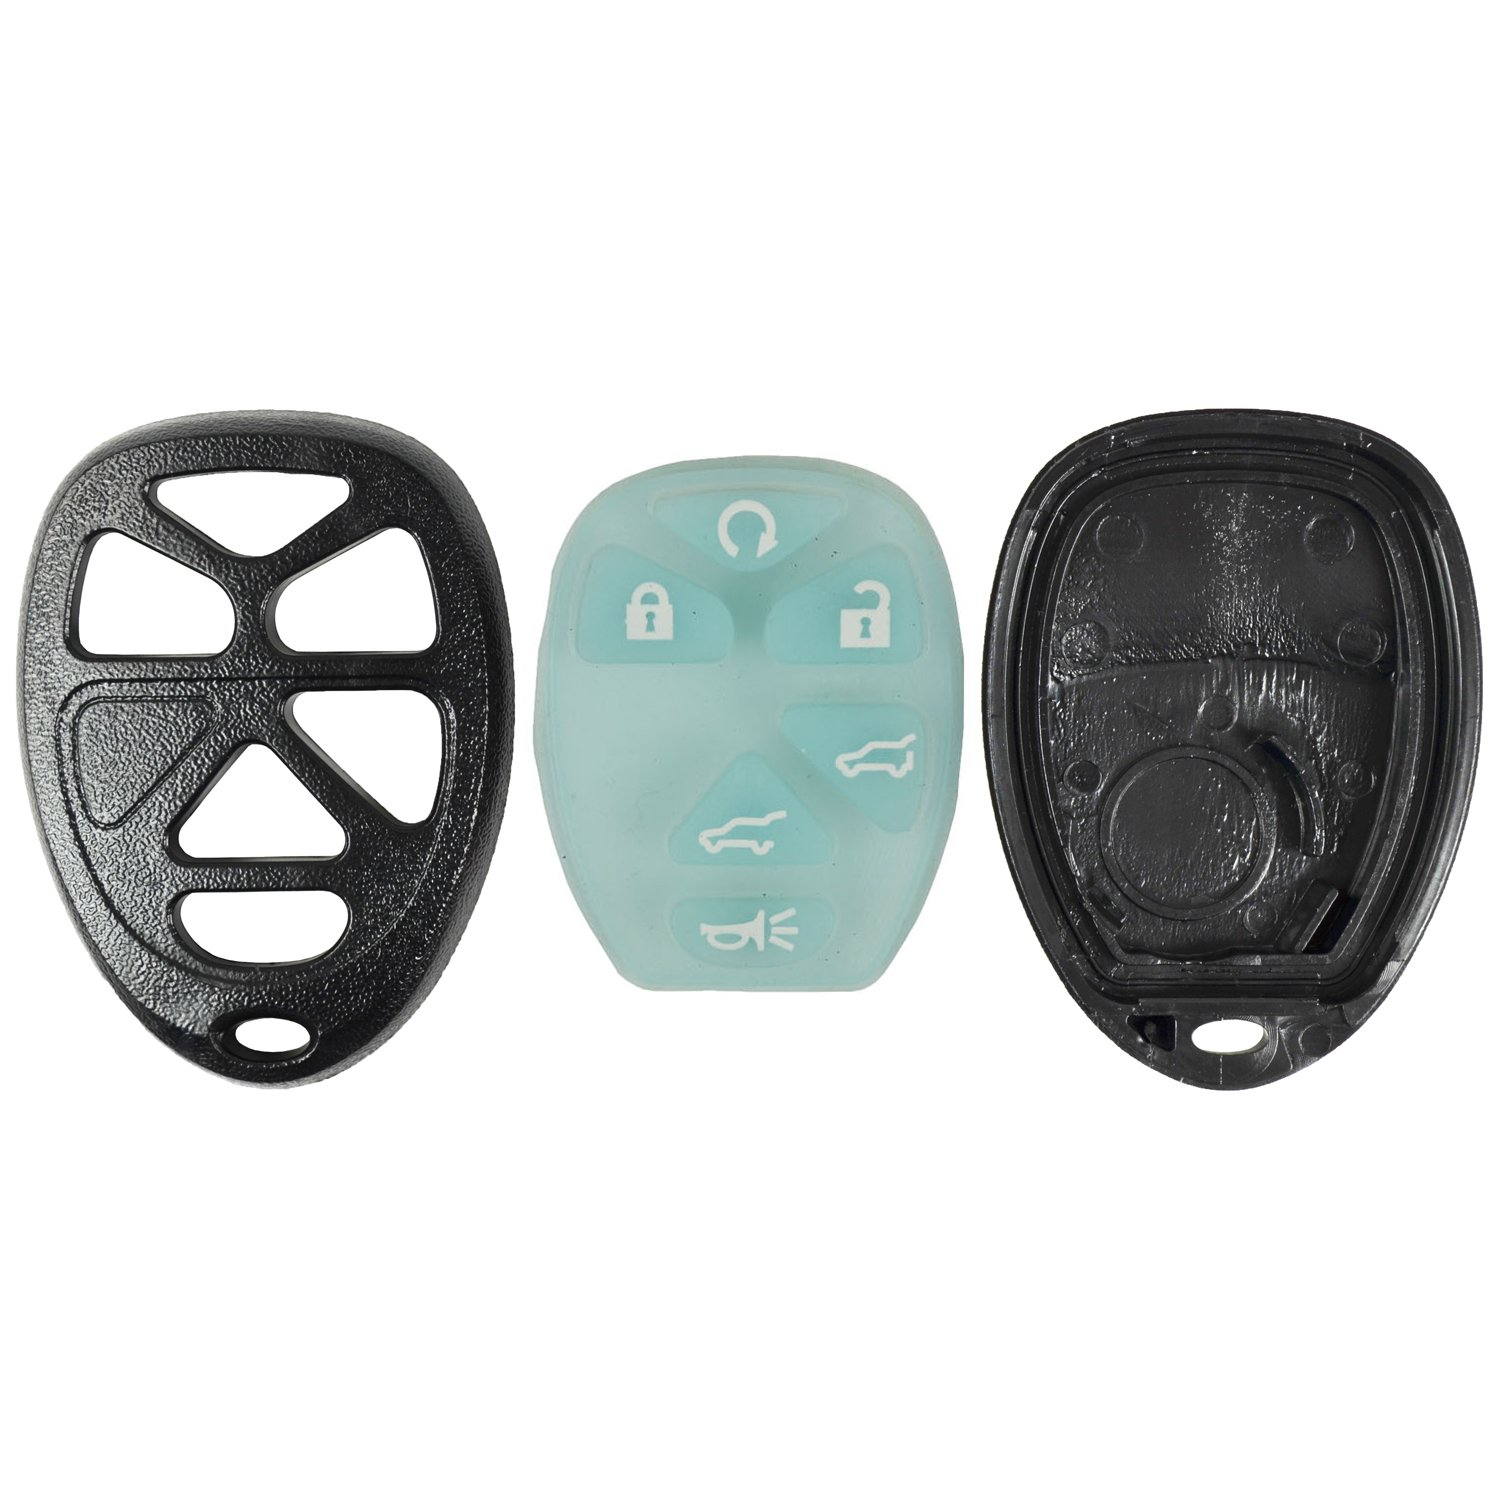 qualitykeylessplus Blue Replacement Case and Glow Pad 6 Button SUV Keyless Remote Key Fob FCC ID OUC60270 FREE KEYTAG